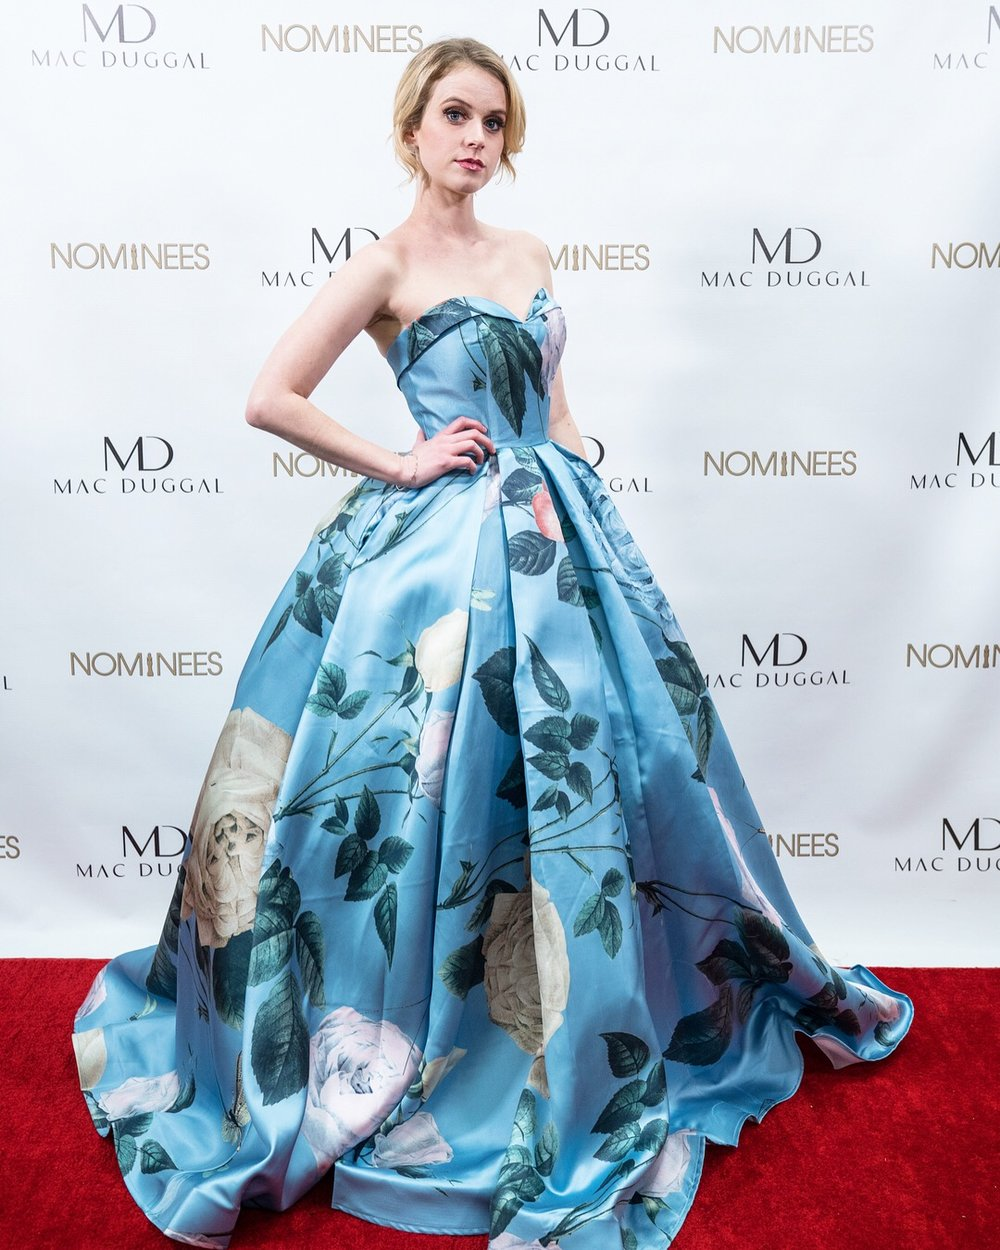 Sponsored by MacDuggal! the designers of this beautiful (and extra) gown